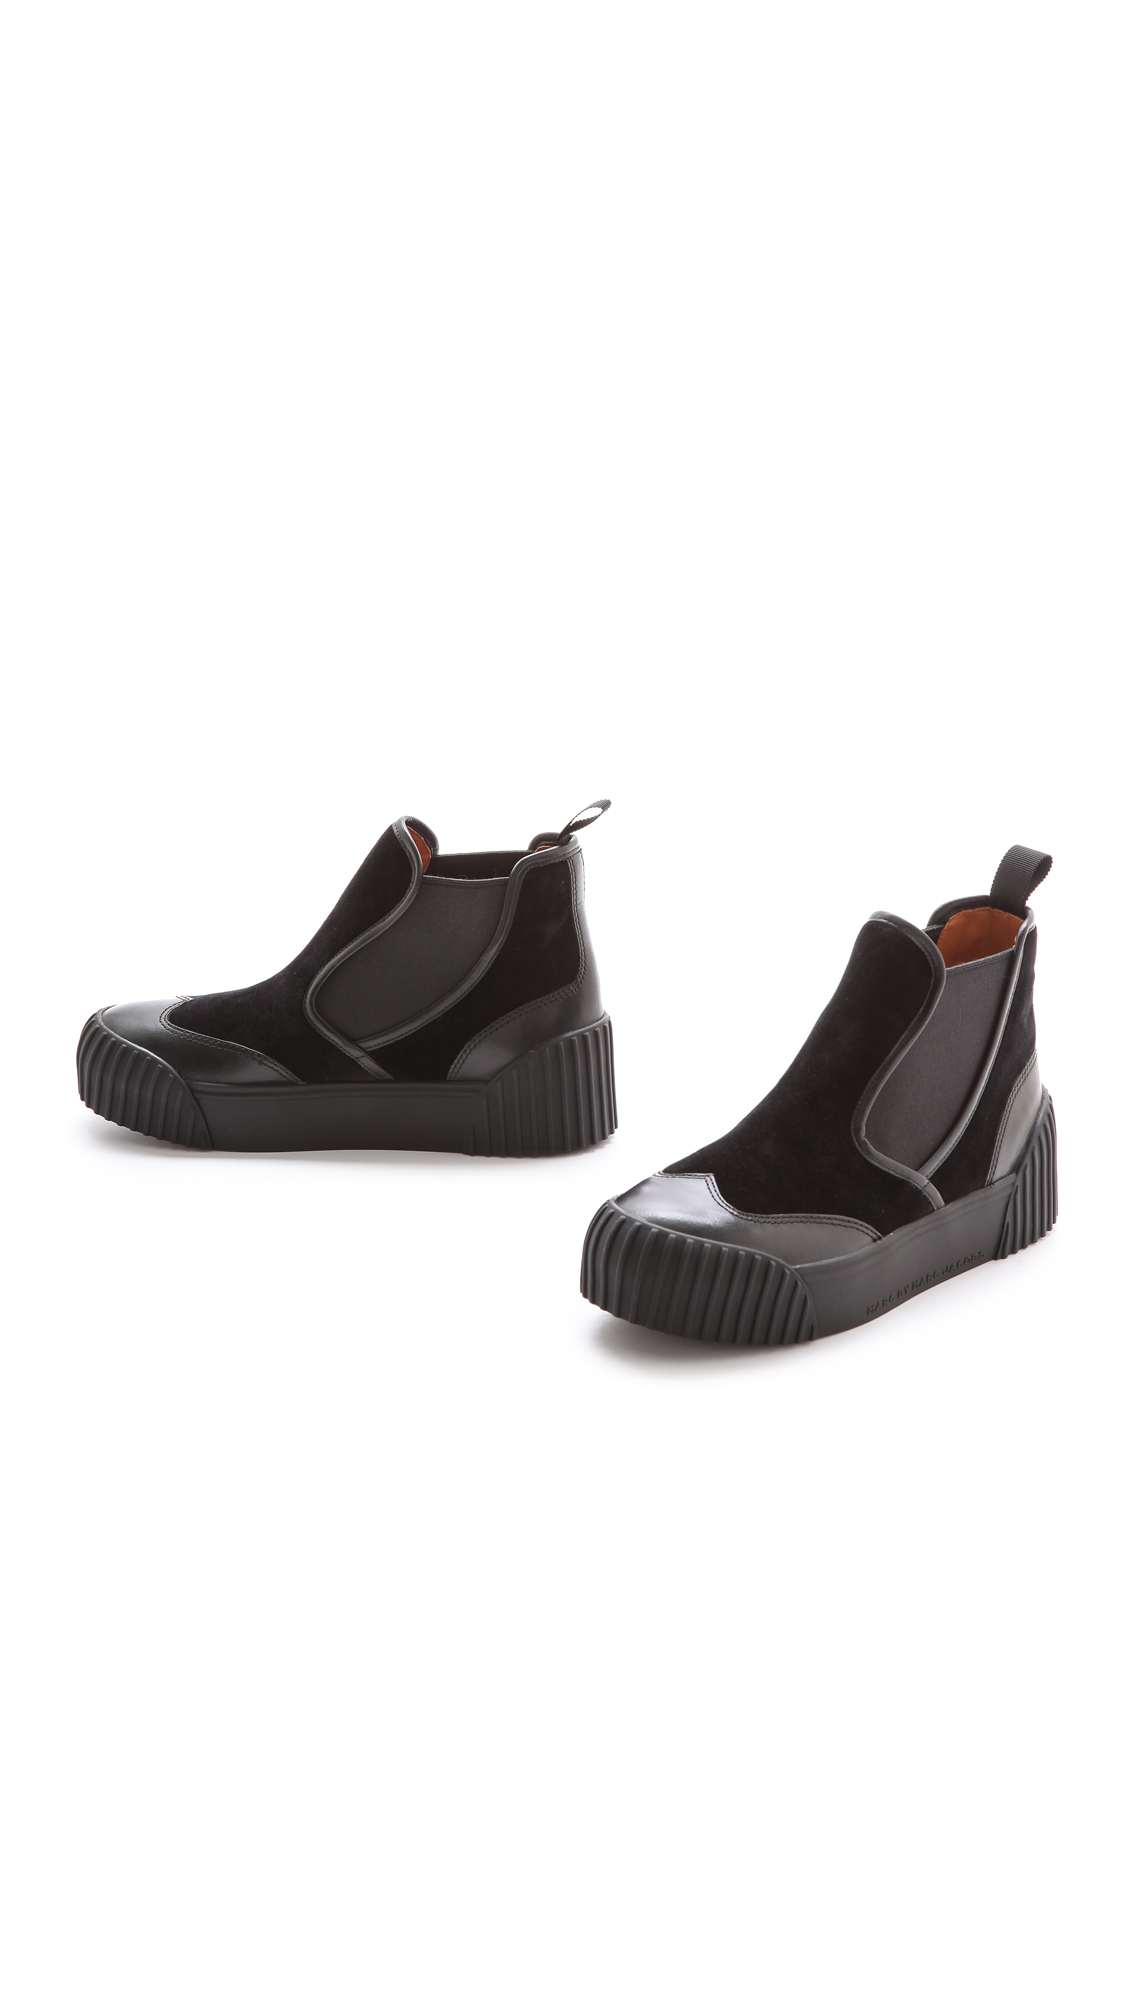 Marc Jacobs Black Velvet Slip-On Sneakers cS5ck